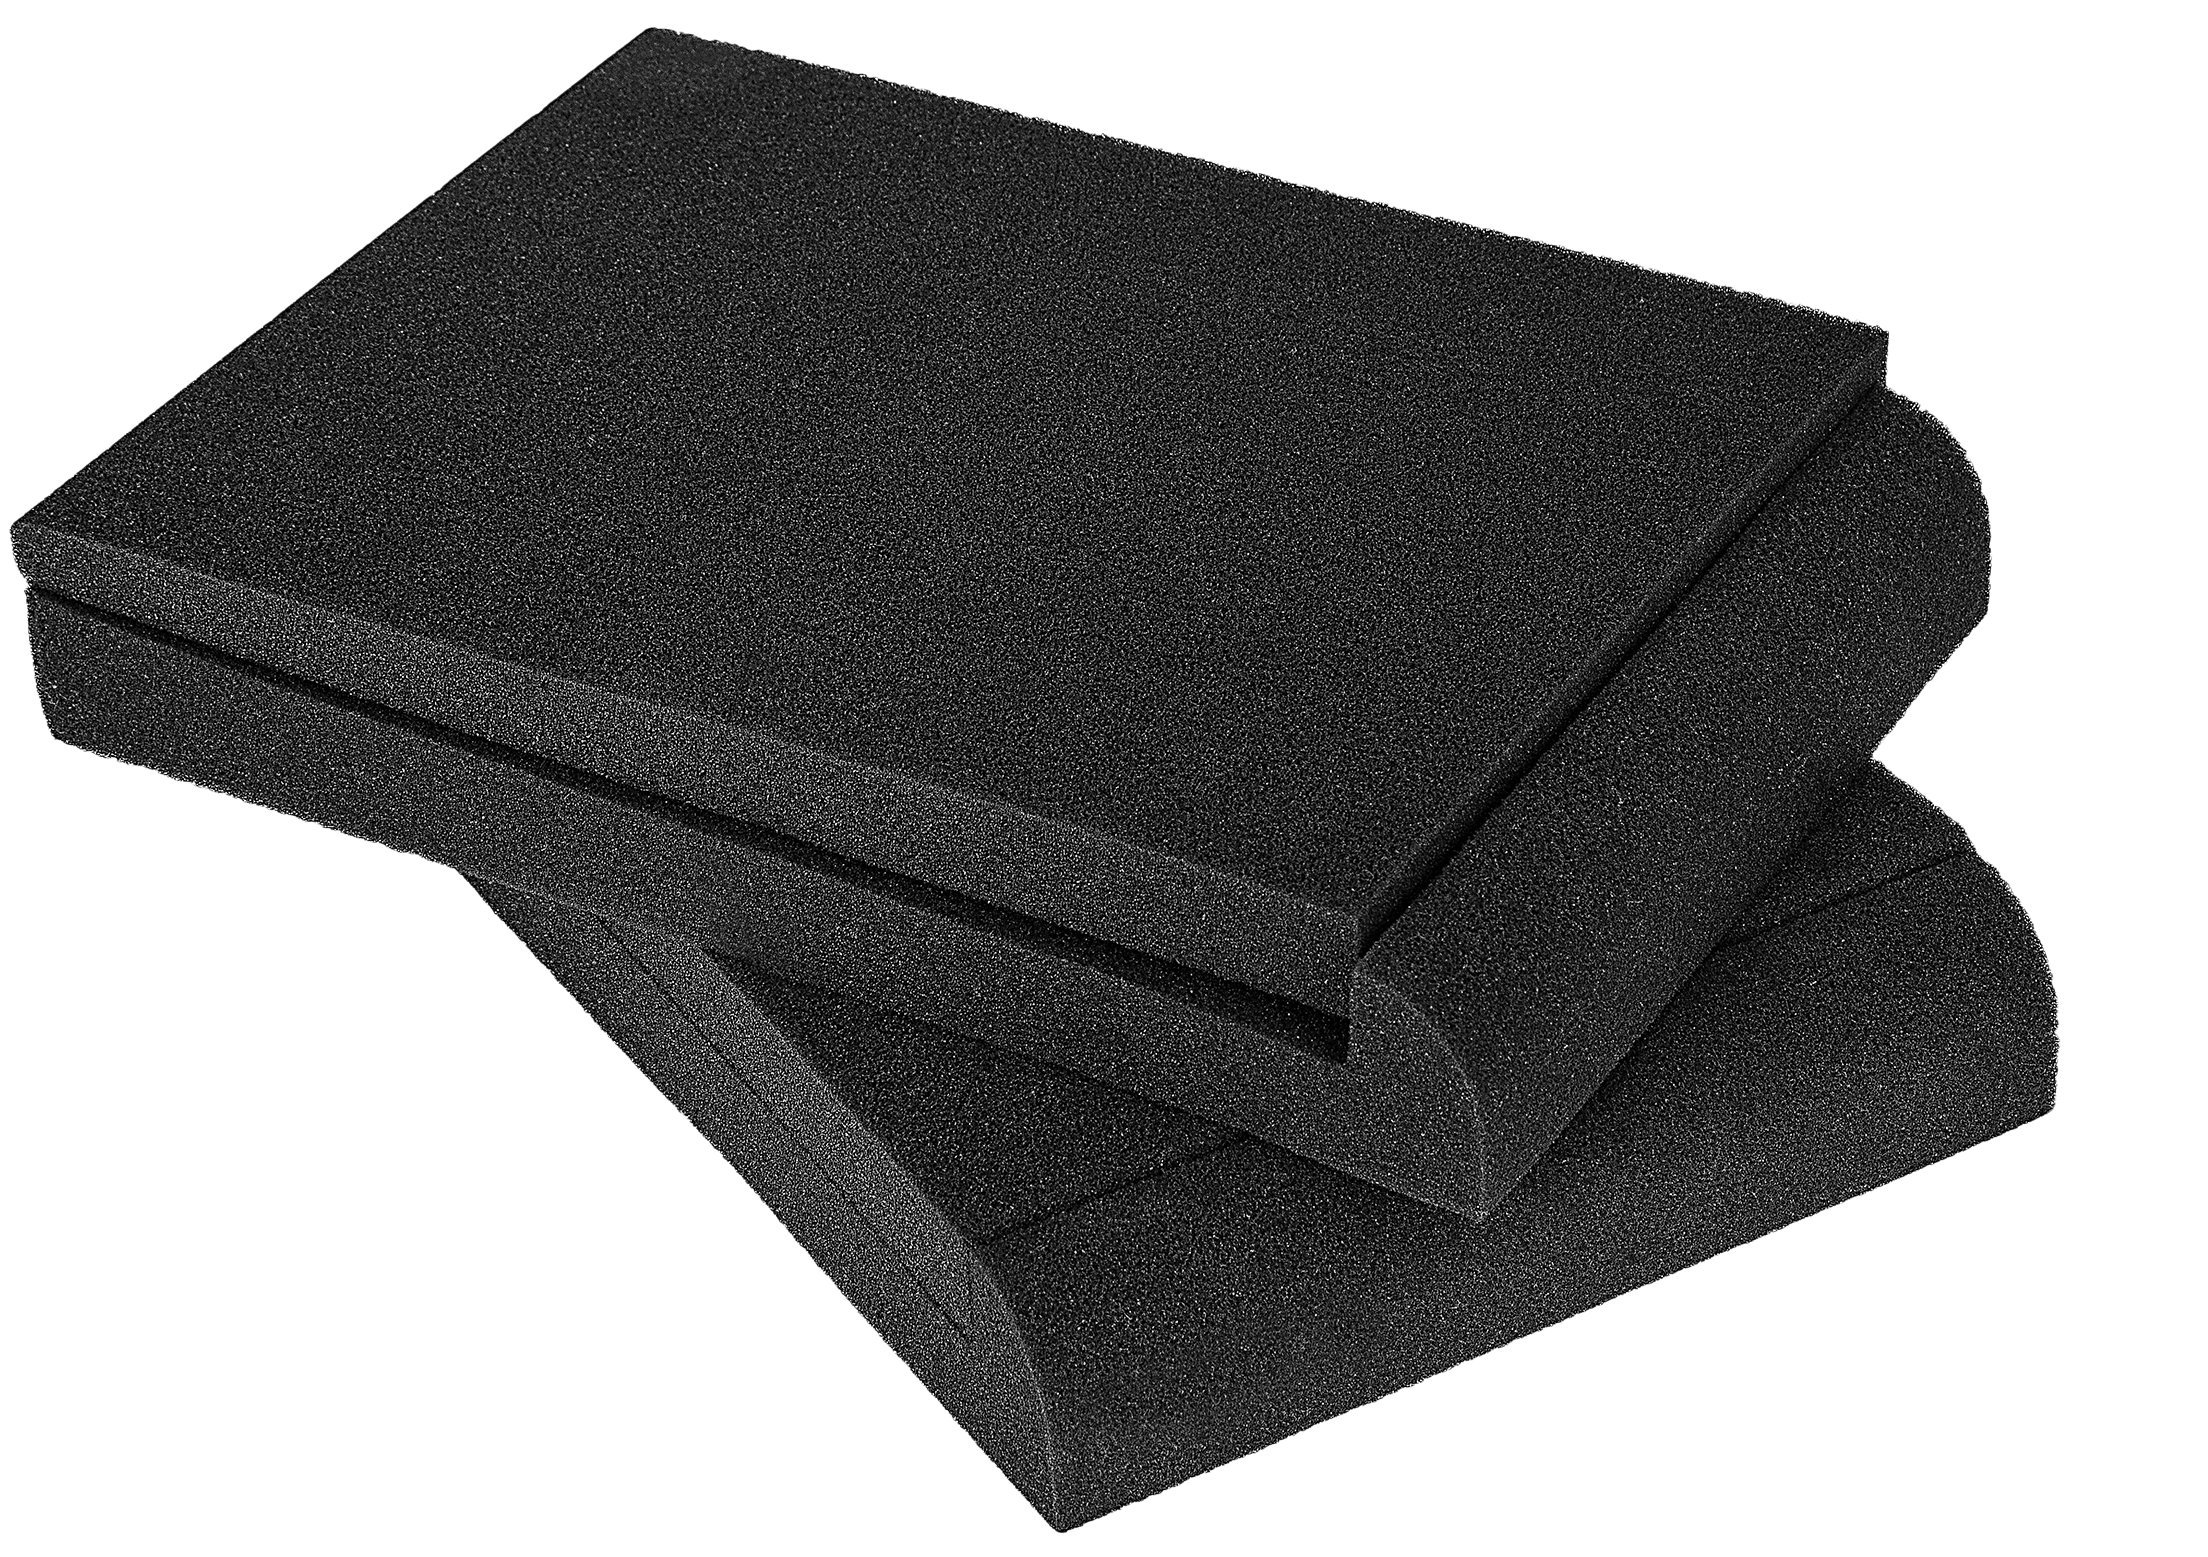 "Daoe High-Density Studio Monitor Isolation Pads Pair For 5"" Monitors Speaker Stands - 2 Pack by Daoe"